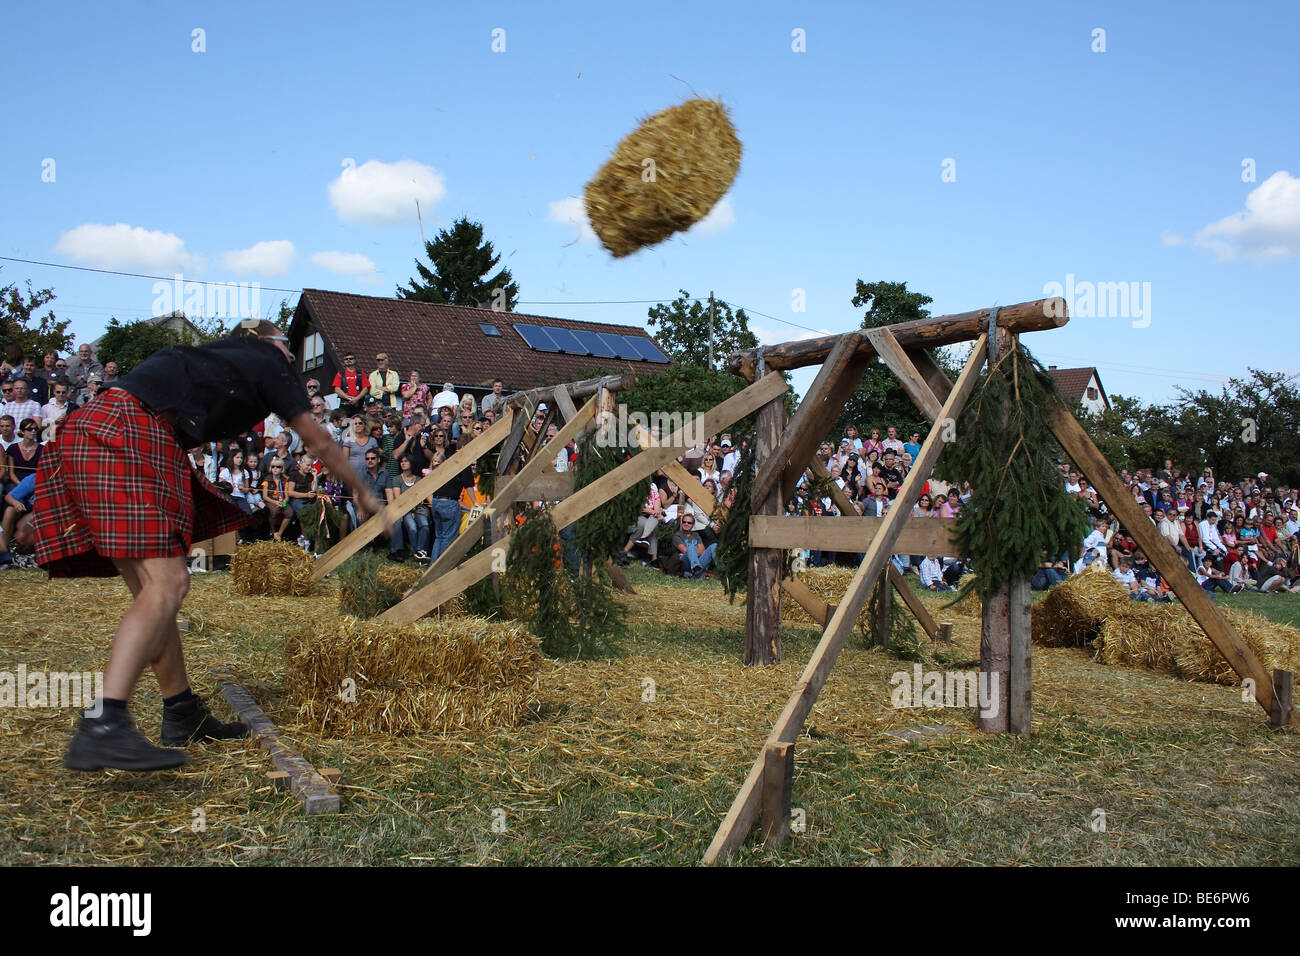 Discipline sheaf toss over an obstacle, Highland Games in Kreenheinstetten, Sigmaringen district, Upper Swabia, - Stock Image